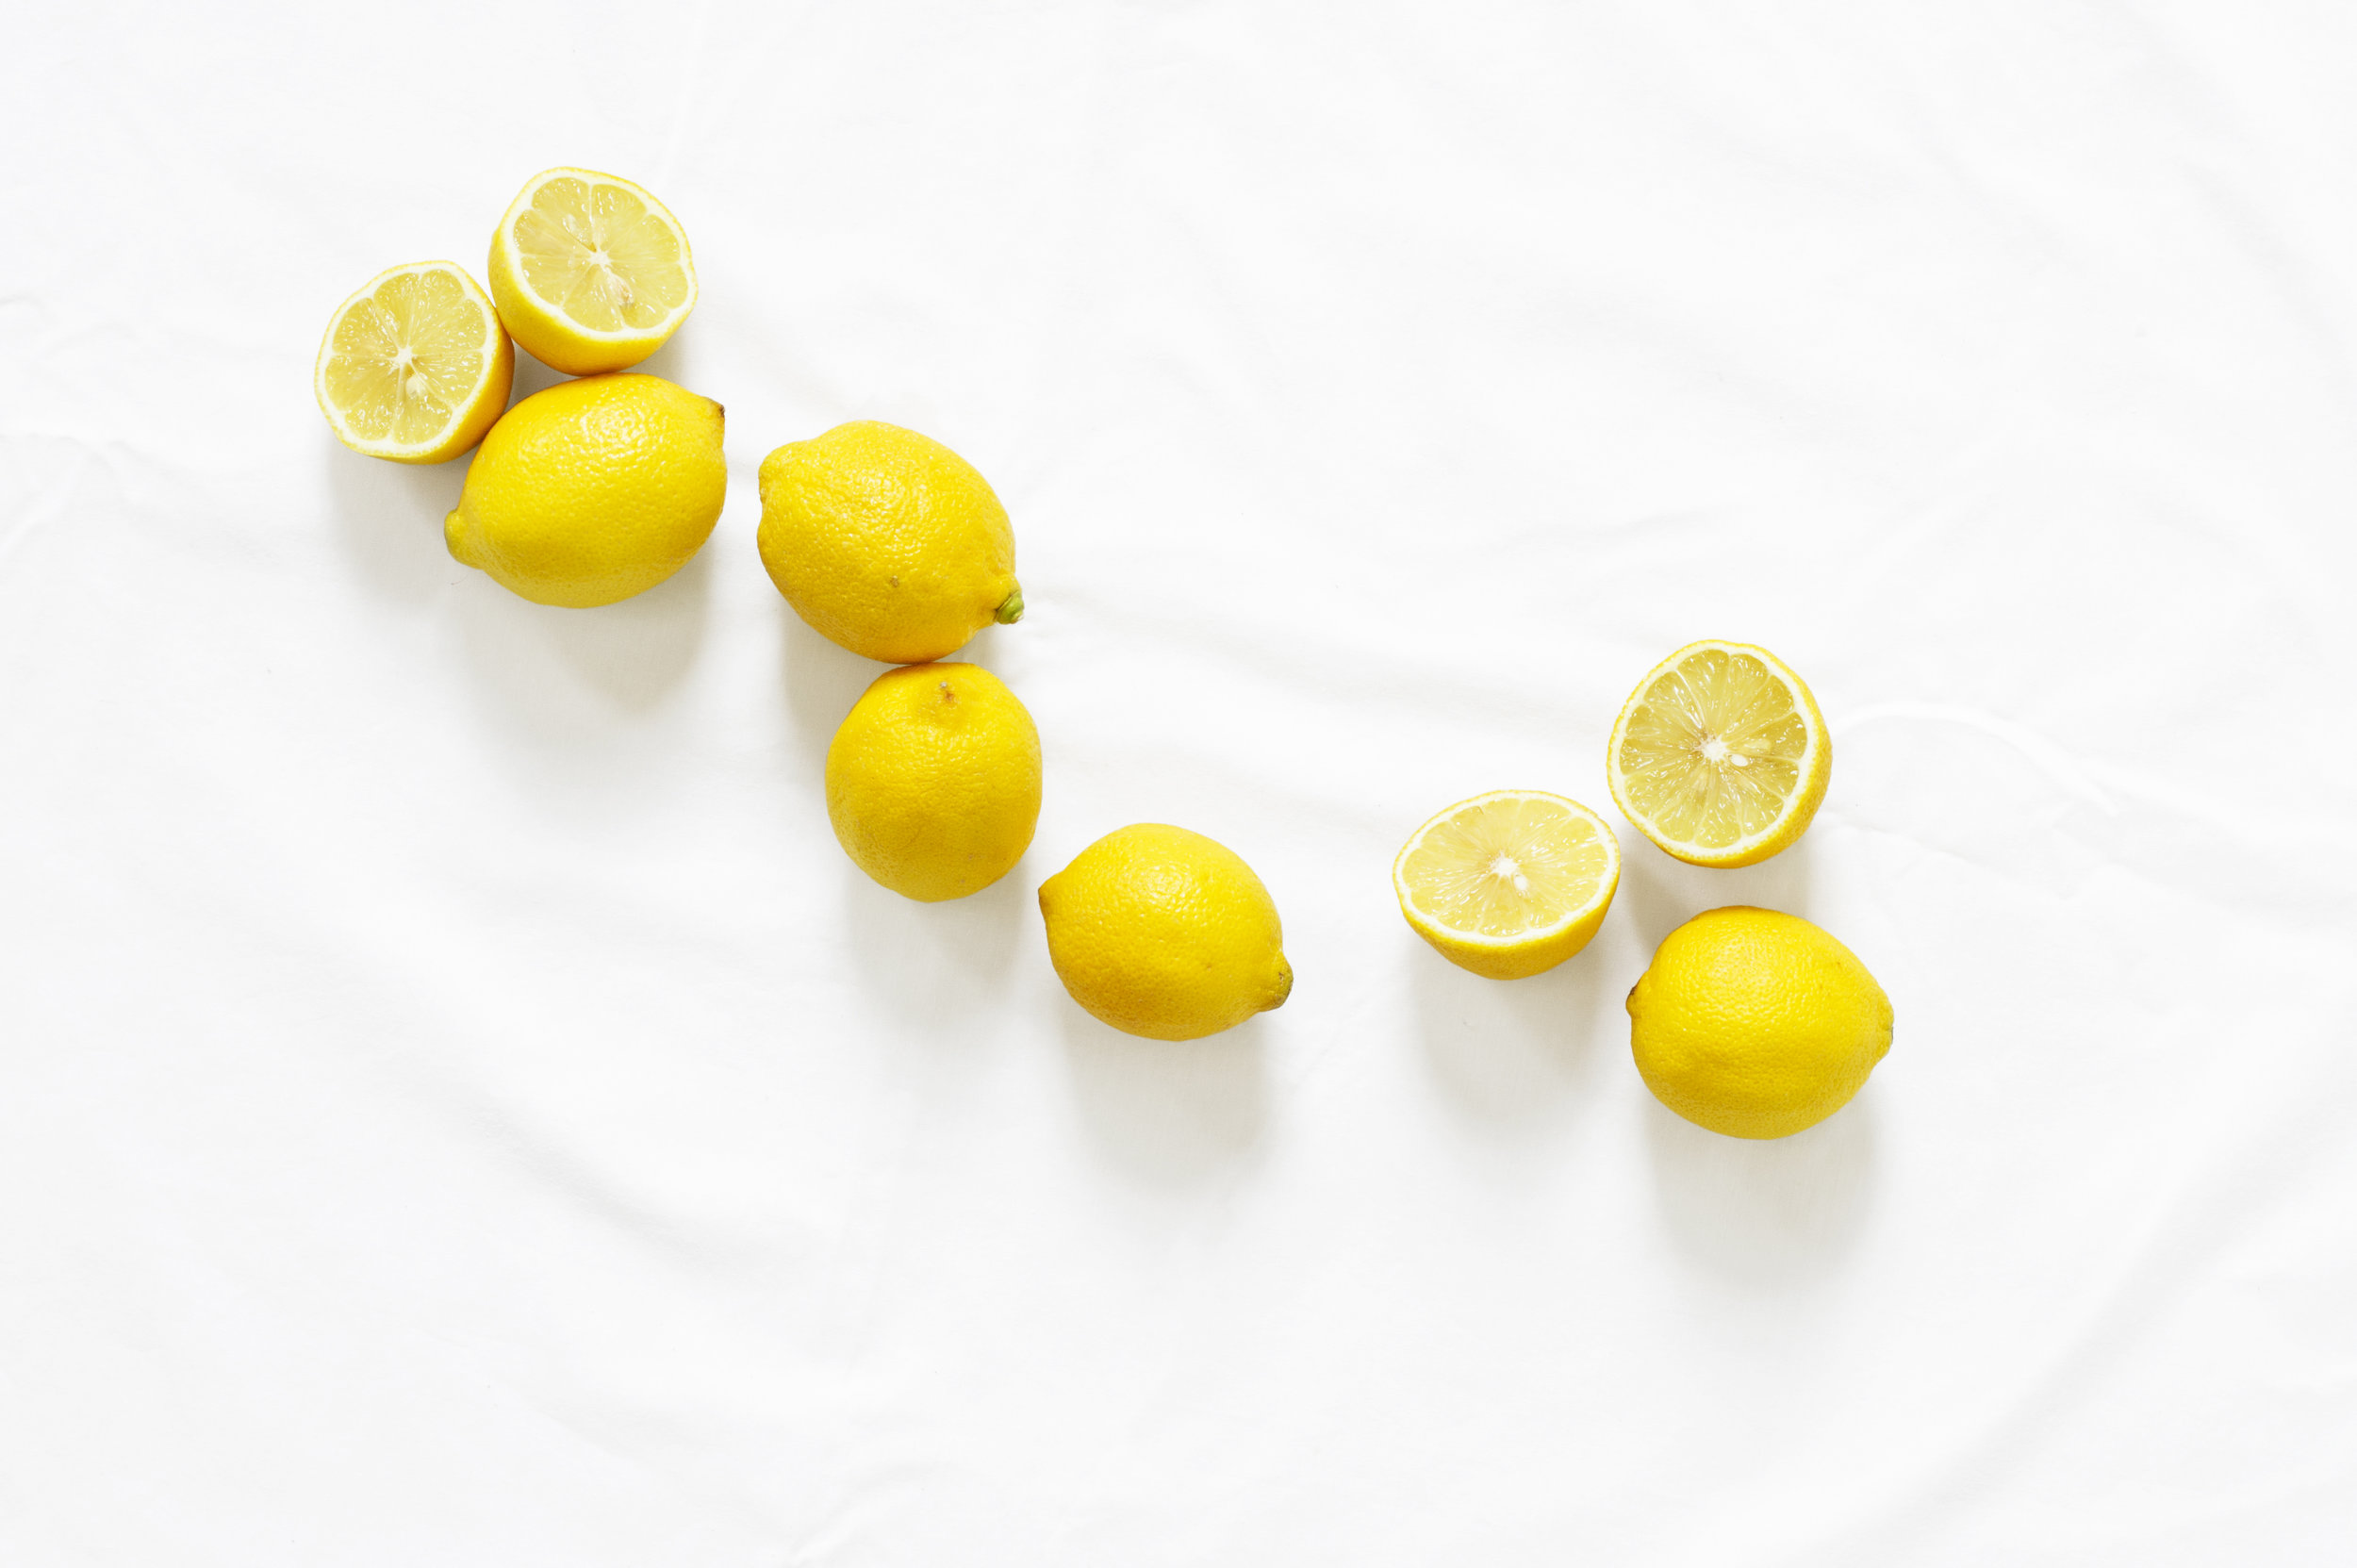 Lemons on white background.